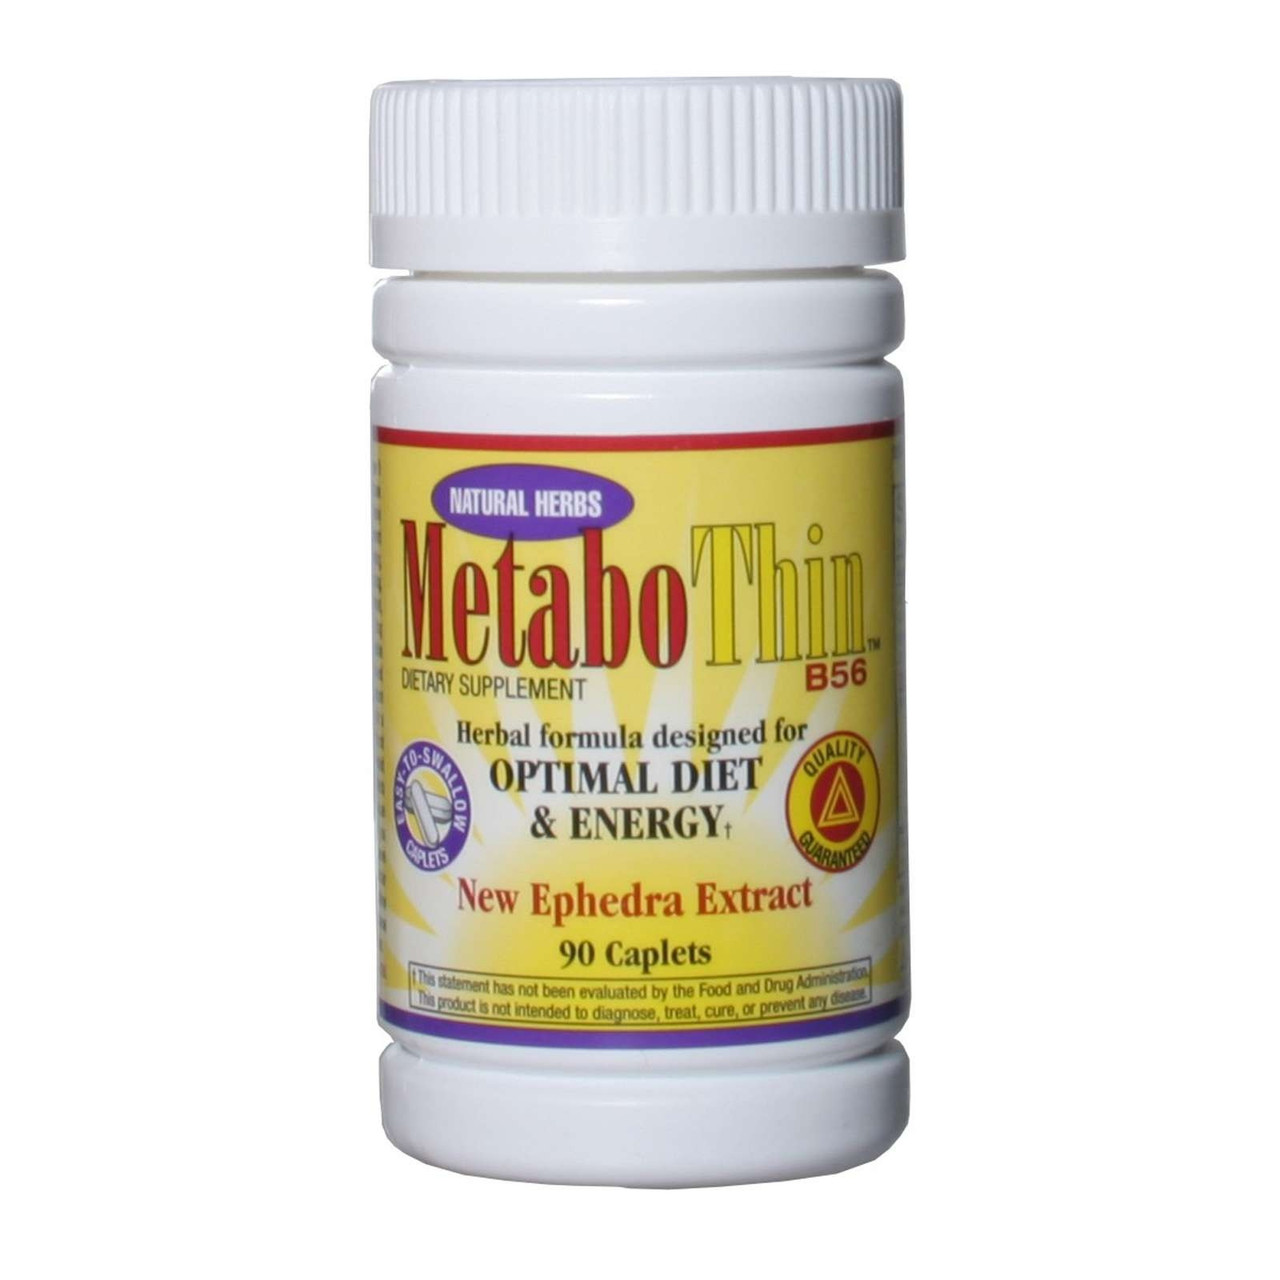 Metabothin with Ephedra 90ct Compare To Original Metabolife 356